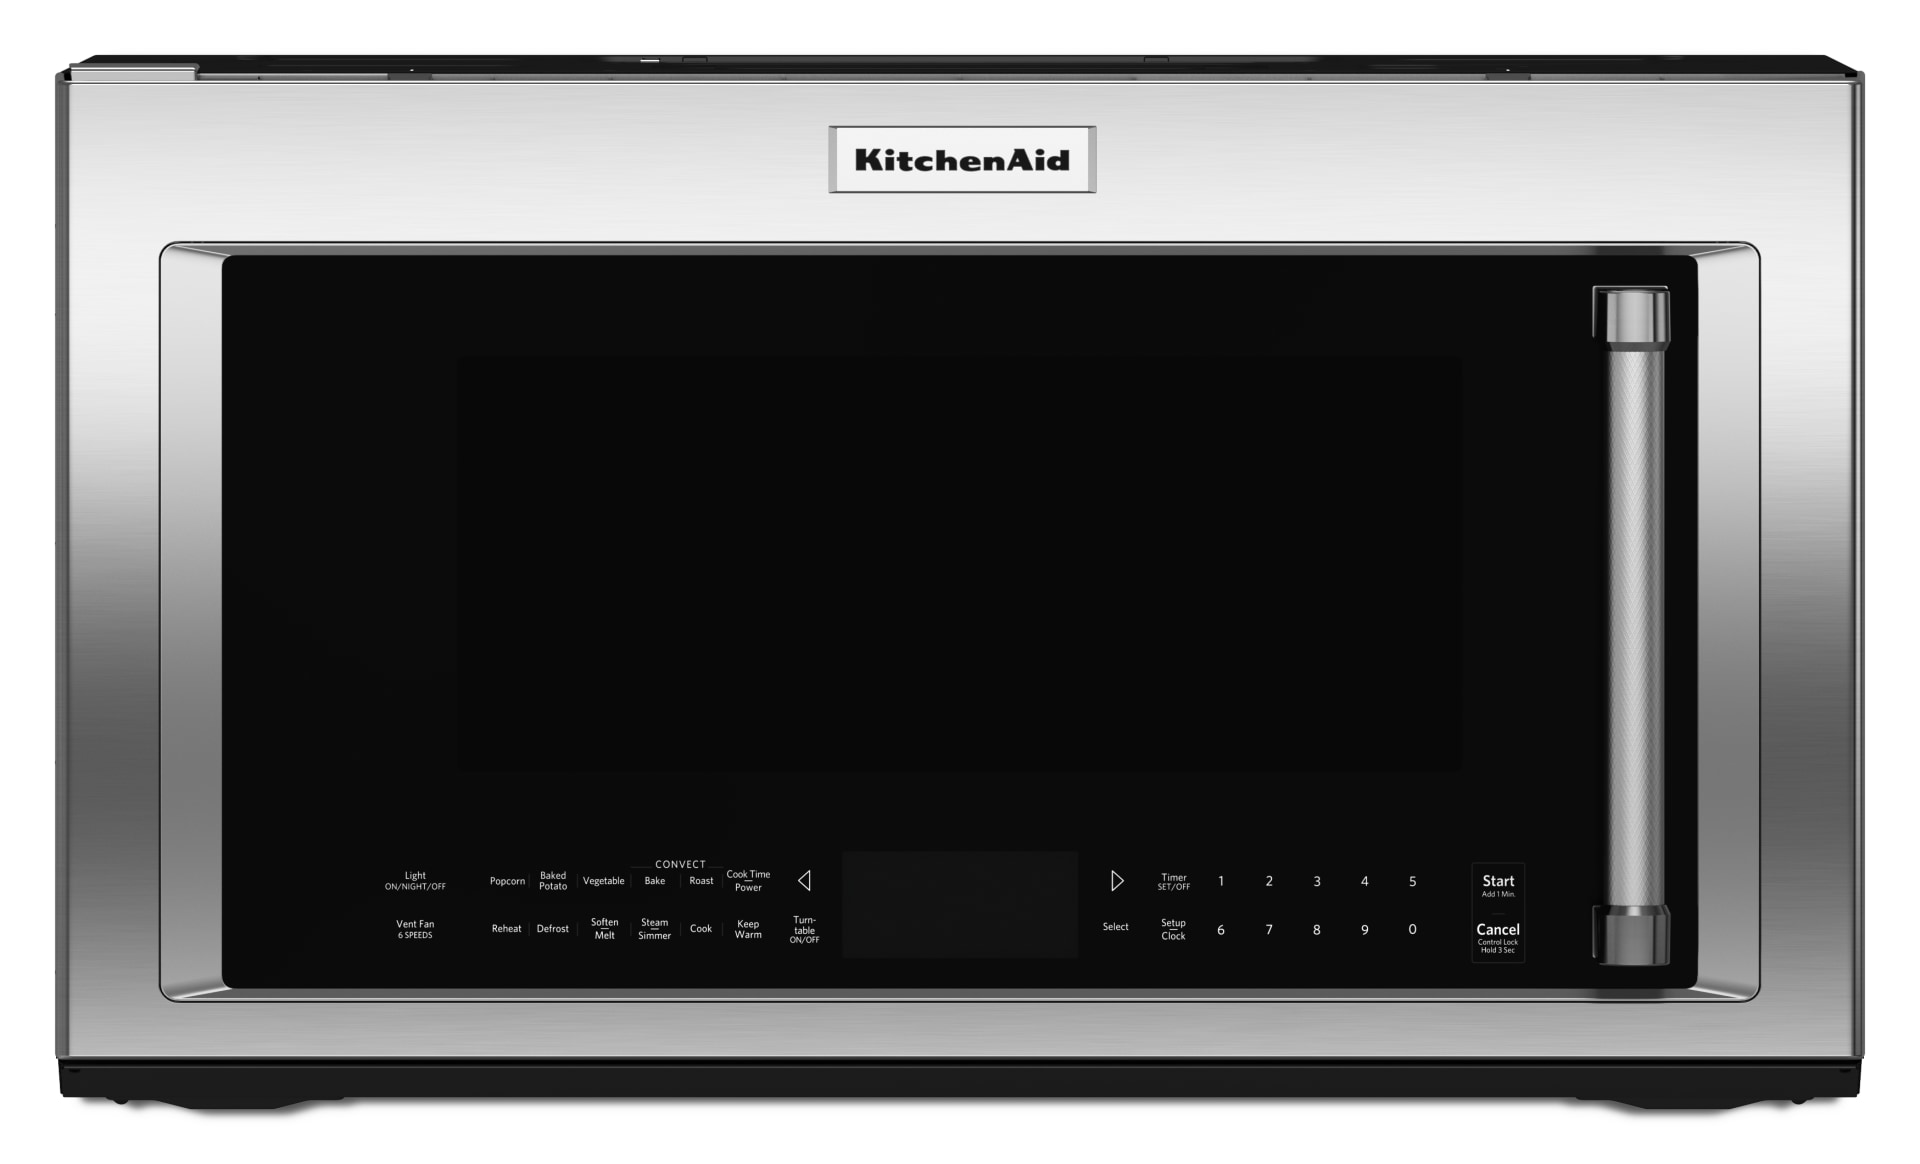 kitchenaid 1 9 cu ft stainless steel over the range microwave hood combination kmhc319ess